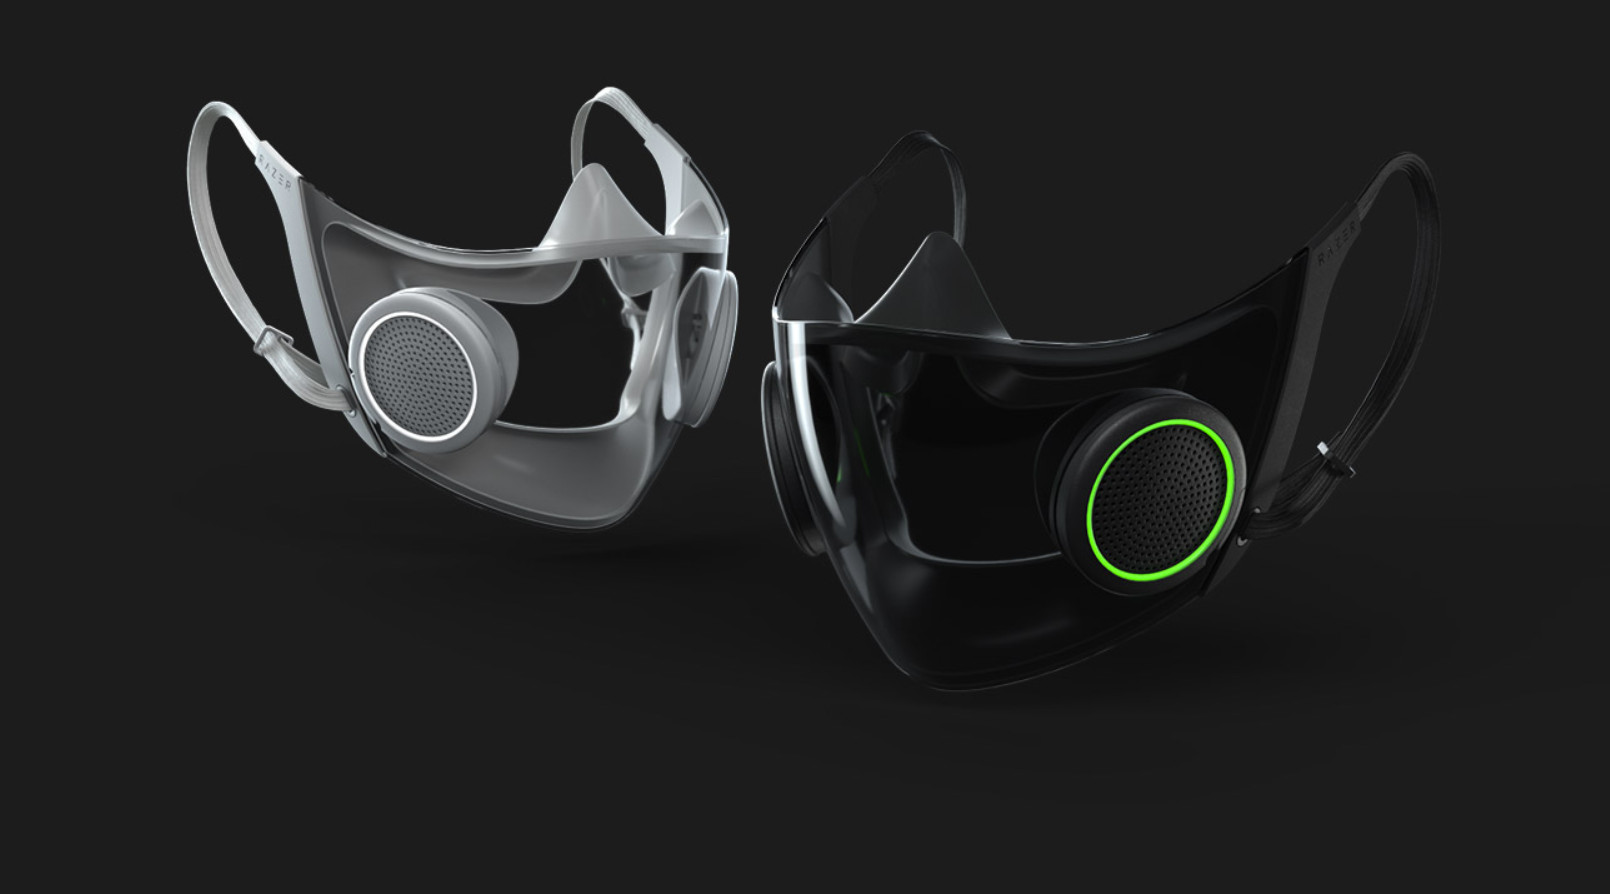 RBG concept mask release and price